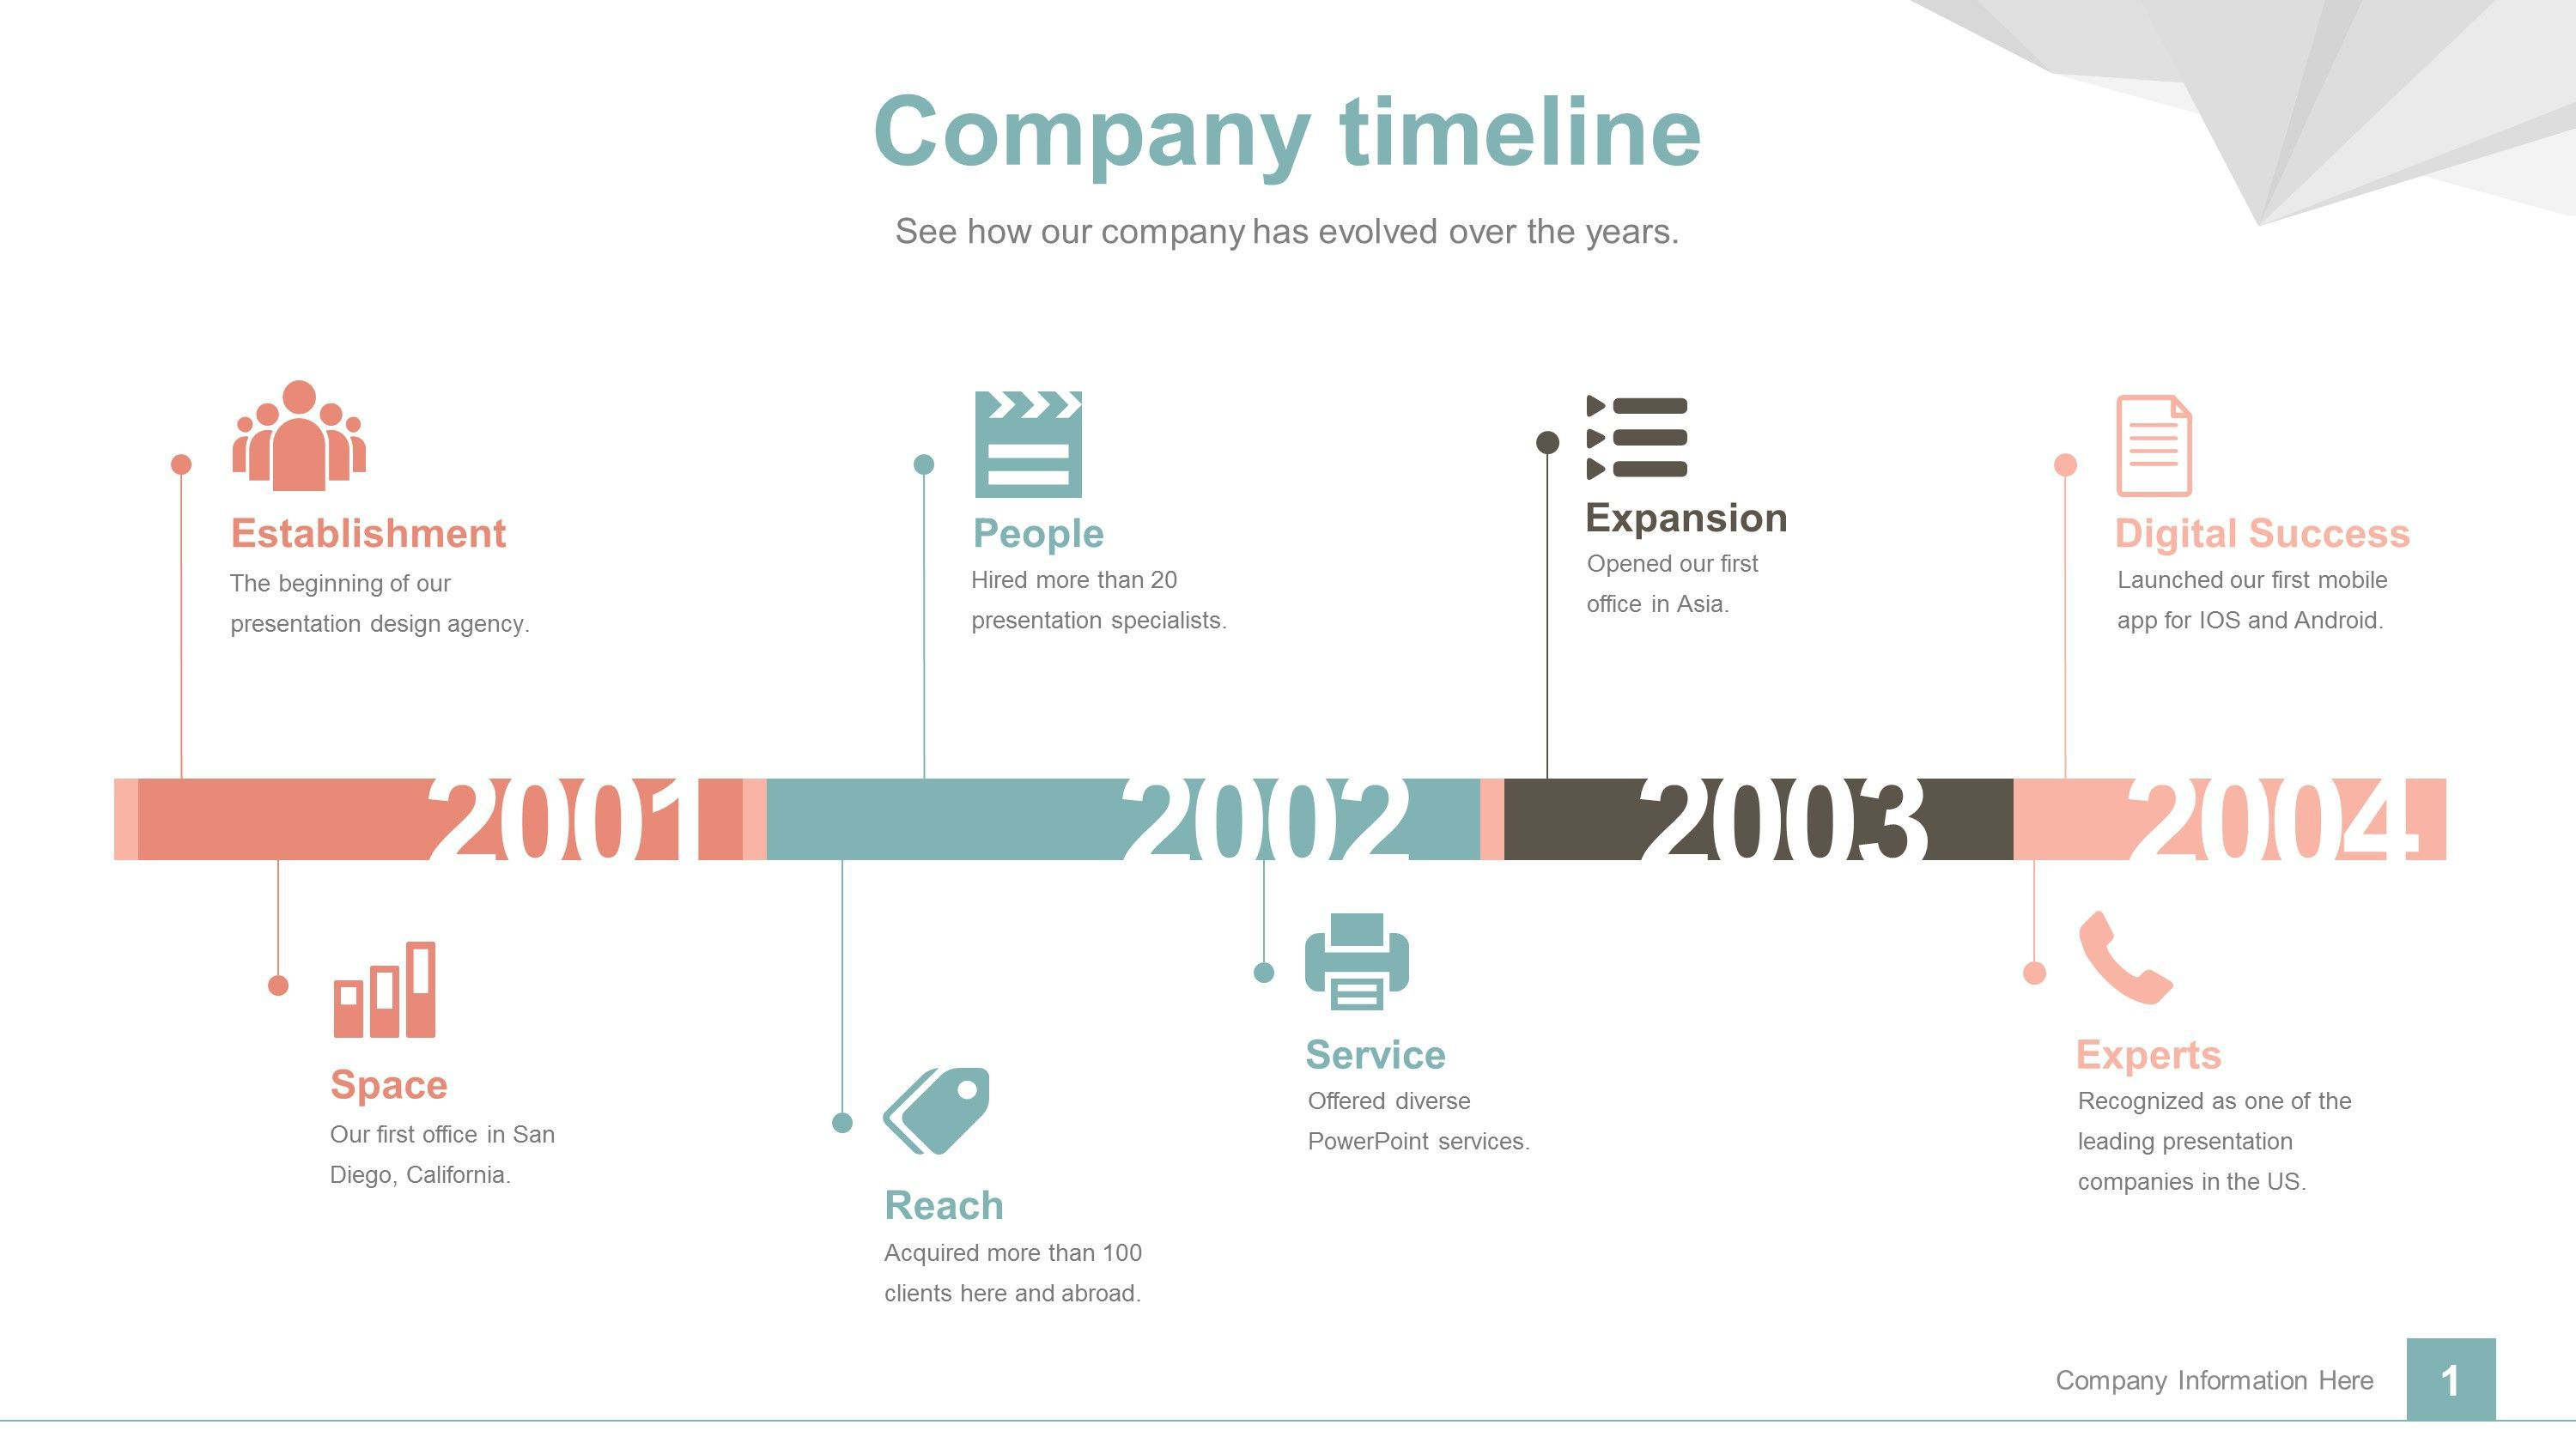 003 Fascinating Powerpoint Timeline Template Free Download High Def  Project HistoryFull